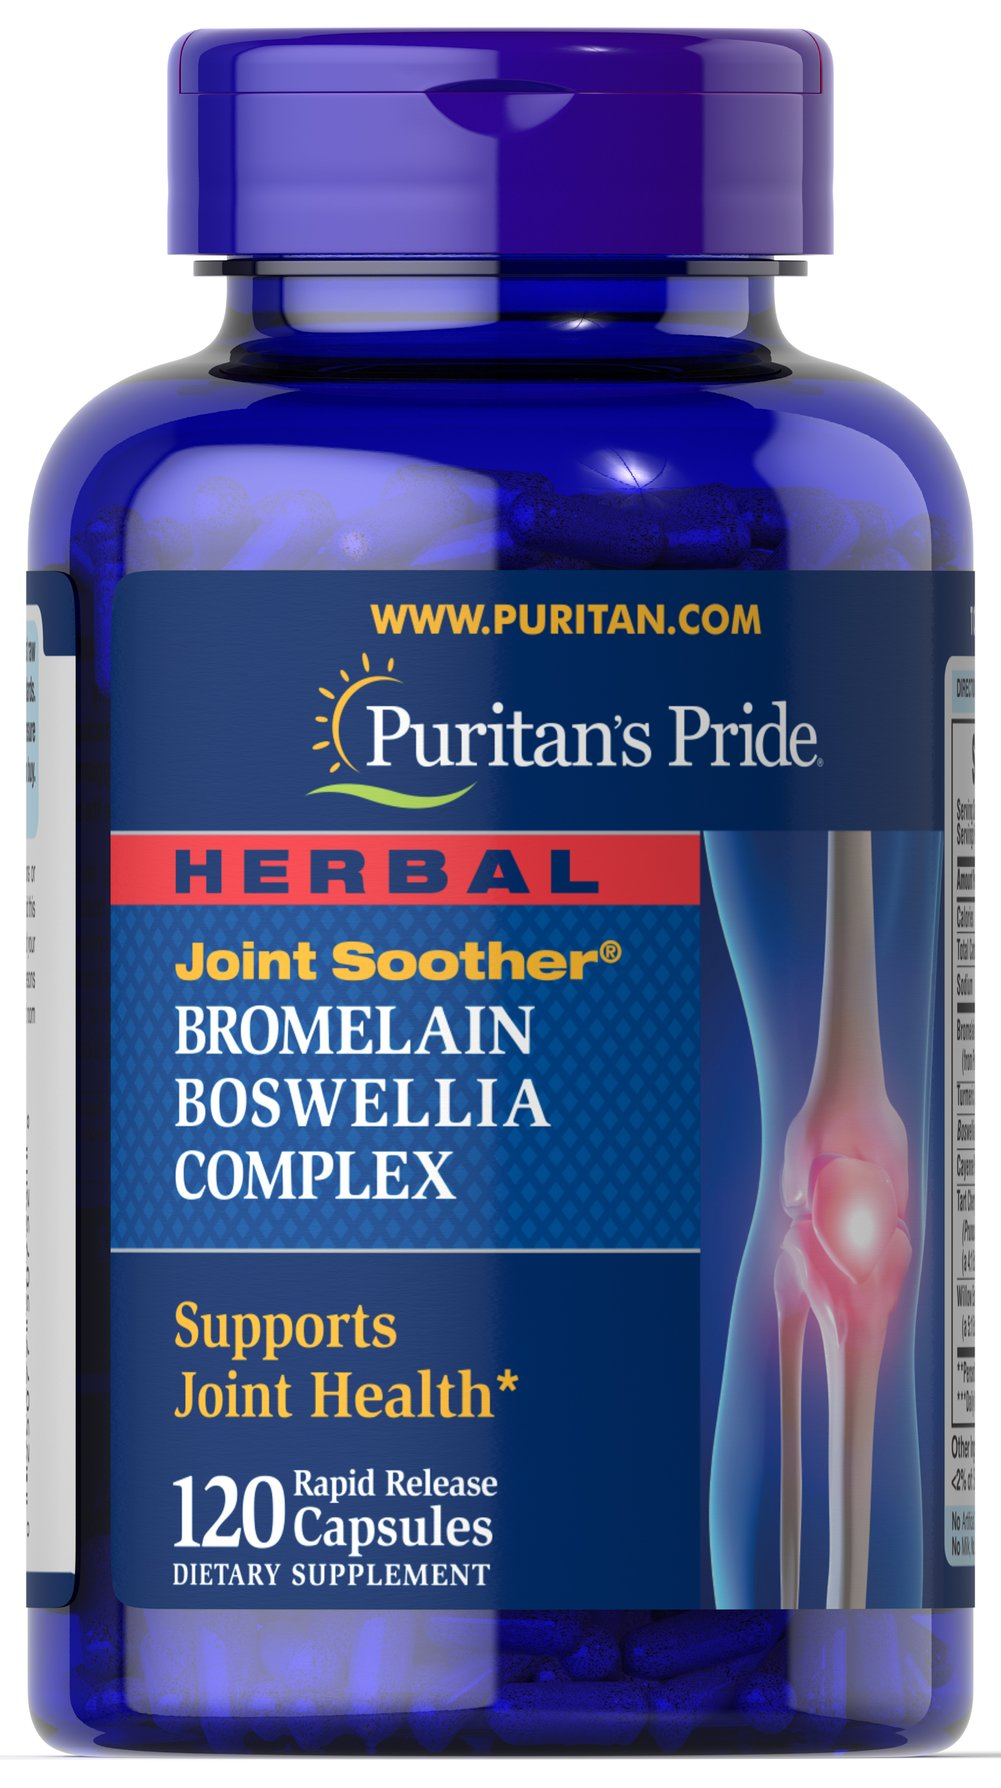 Herbal Joint Soother® Bromelain Boswellia Complex with Turmeric Thumbnail Alternate Bottle View